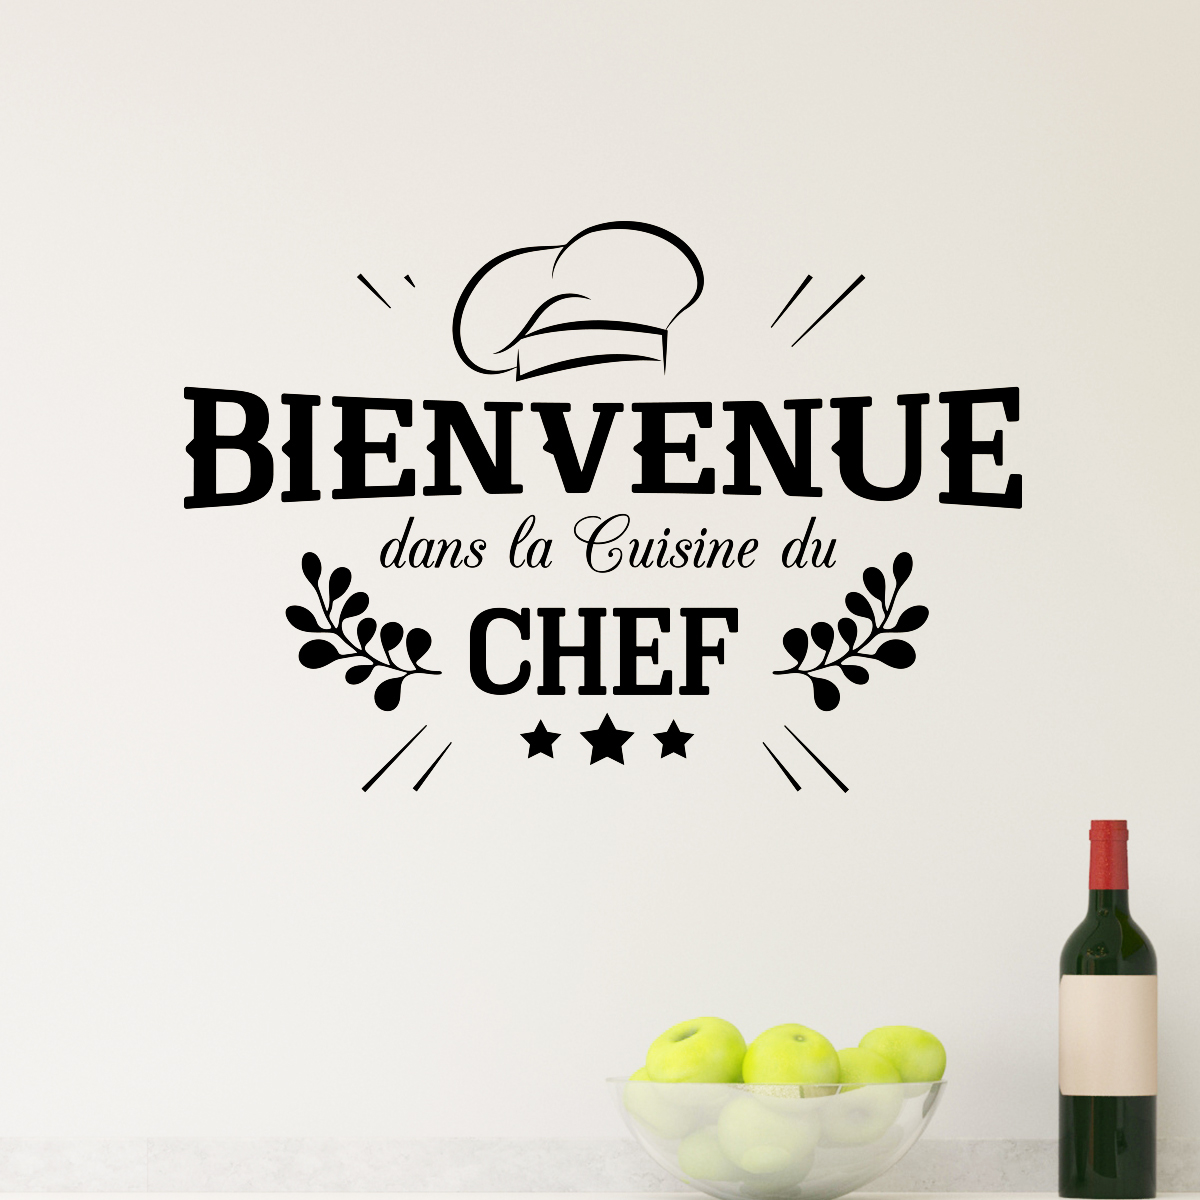 sticker bienvenue cuisine du chef stickers cuisine textes et recettes ambiance sticker. Black Bedroom Furniture Sets. Home Design Ideas